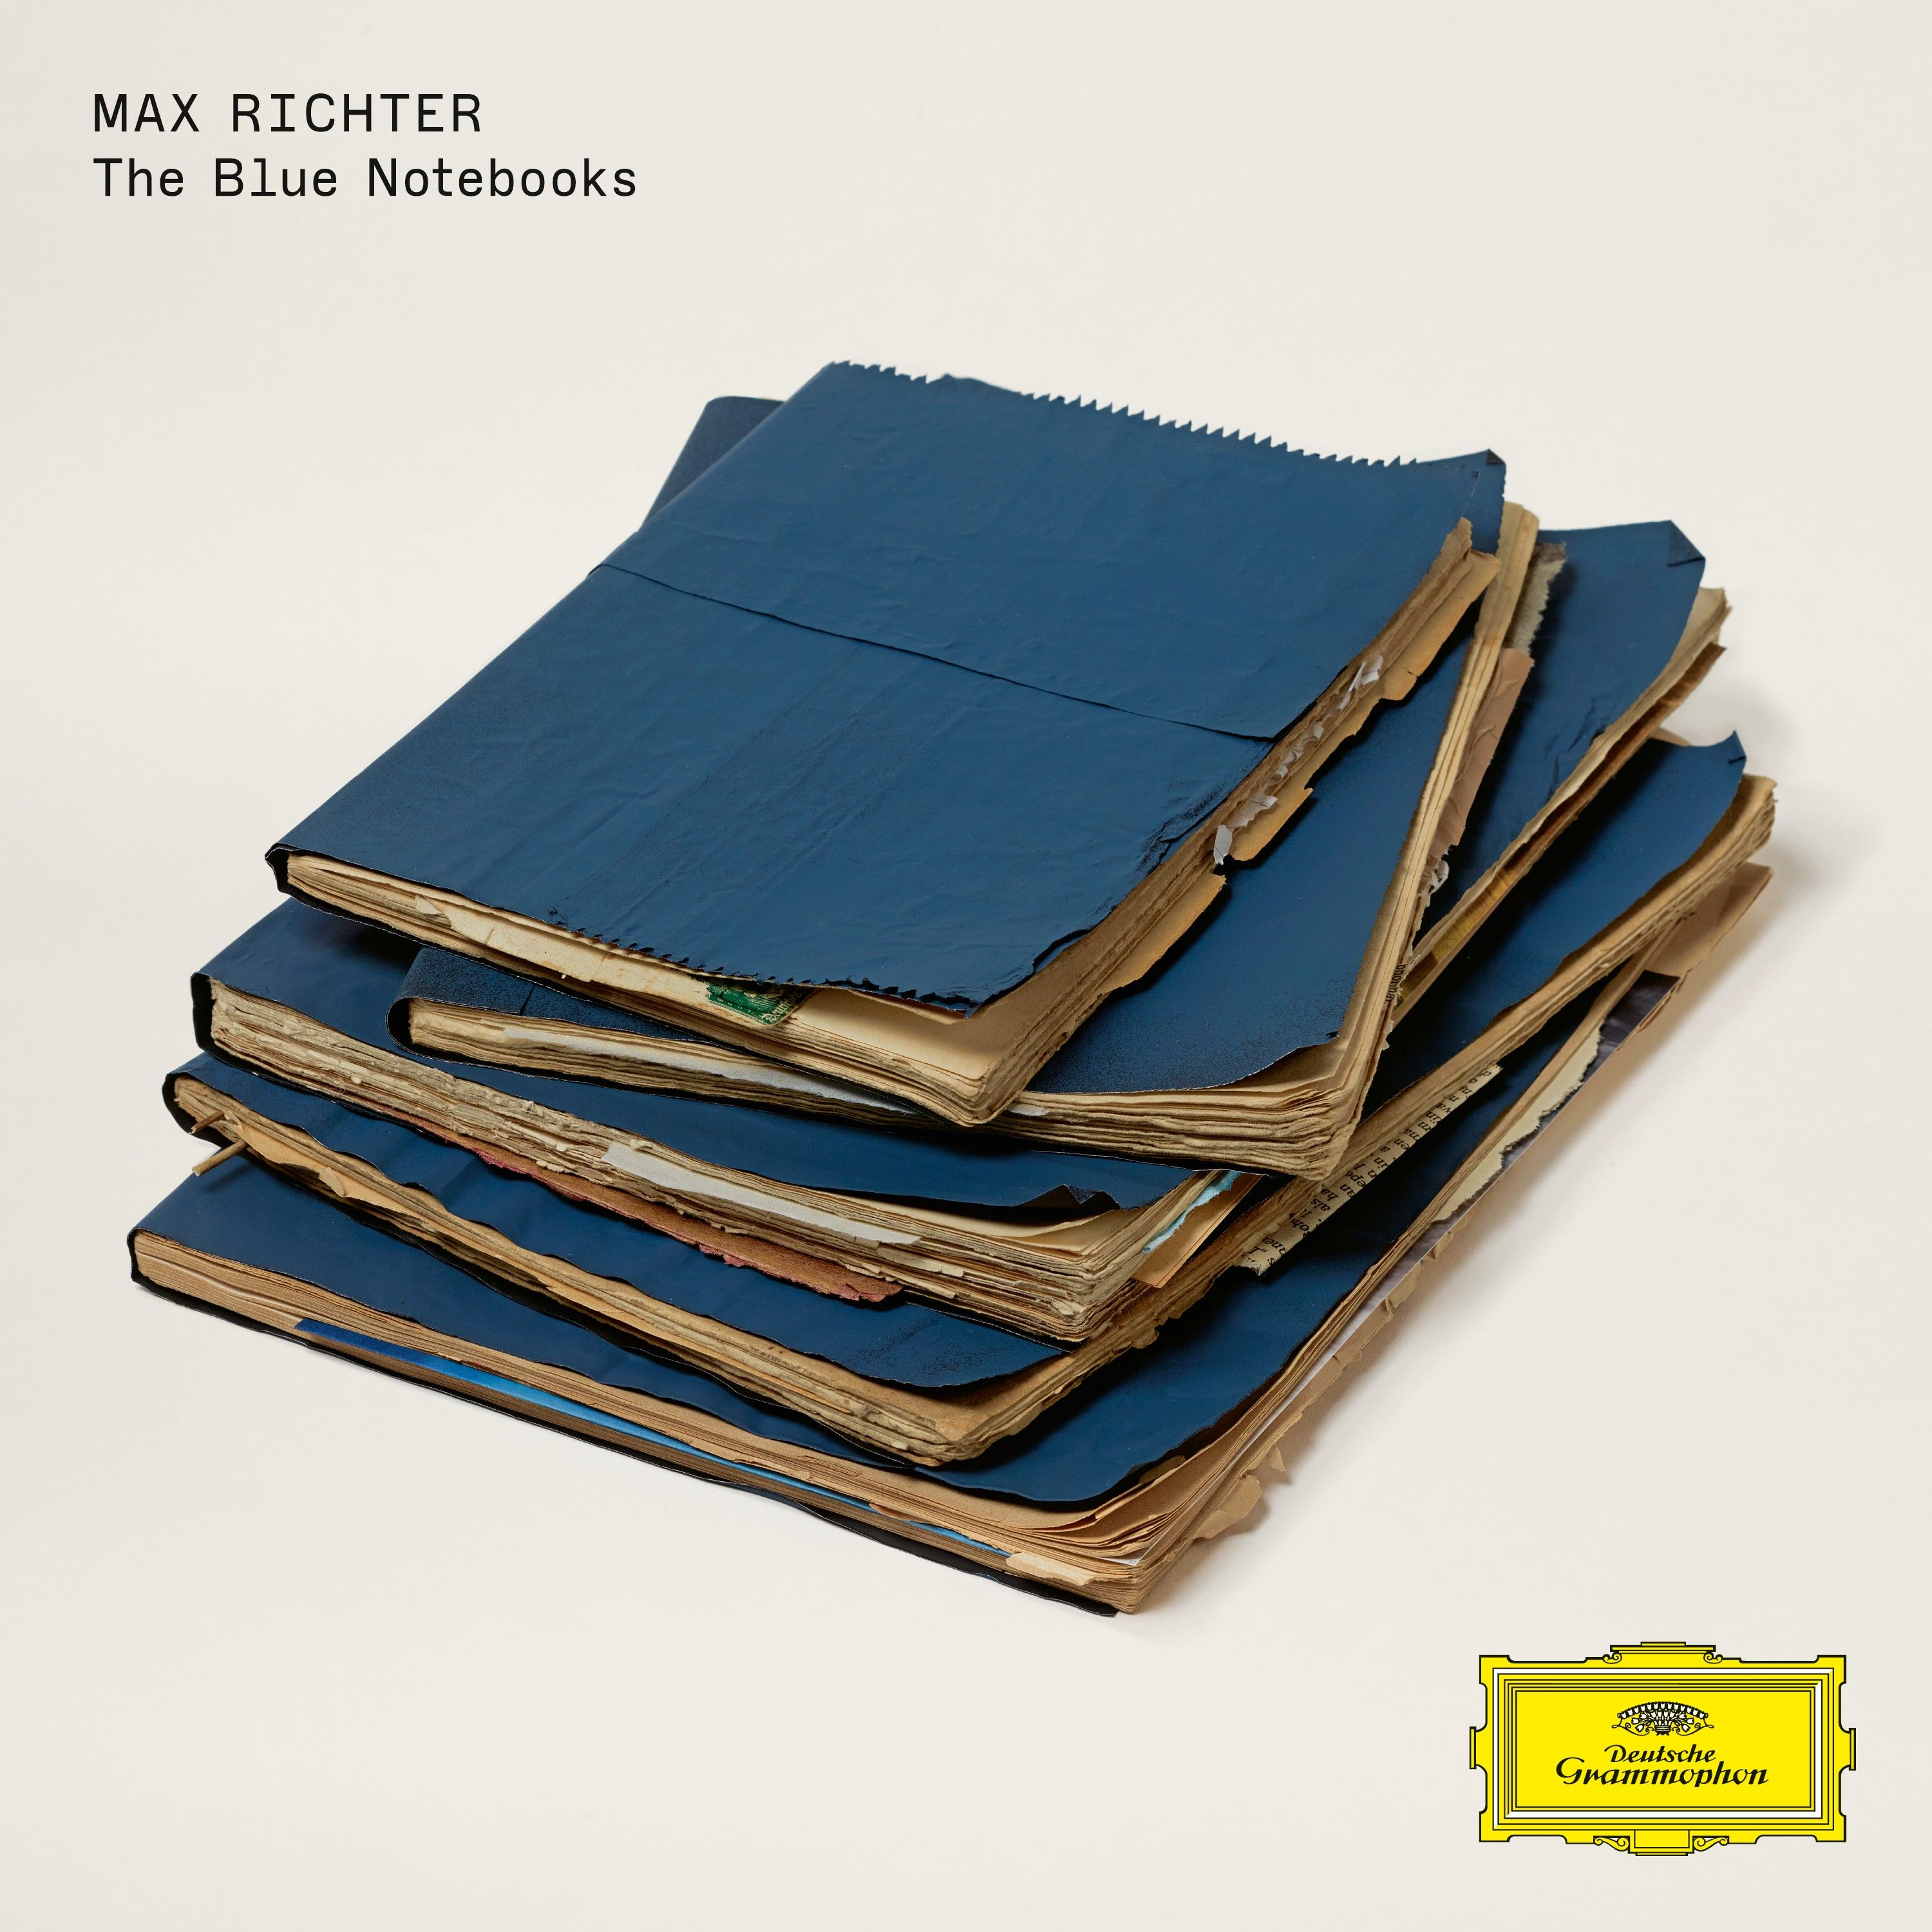 Max Richter Announces Blue Notebooks Anniversary Reissue With New Music And Remixes Dr Wong Emporium Of Tings Web Magazine Max Richter Classical Music New Music